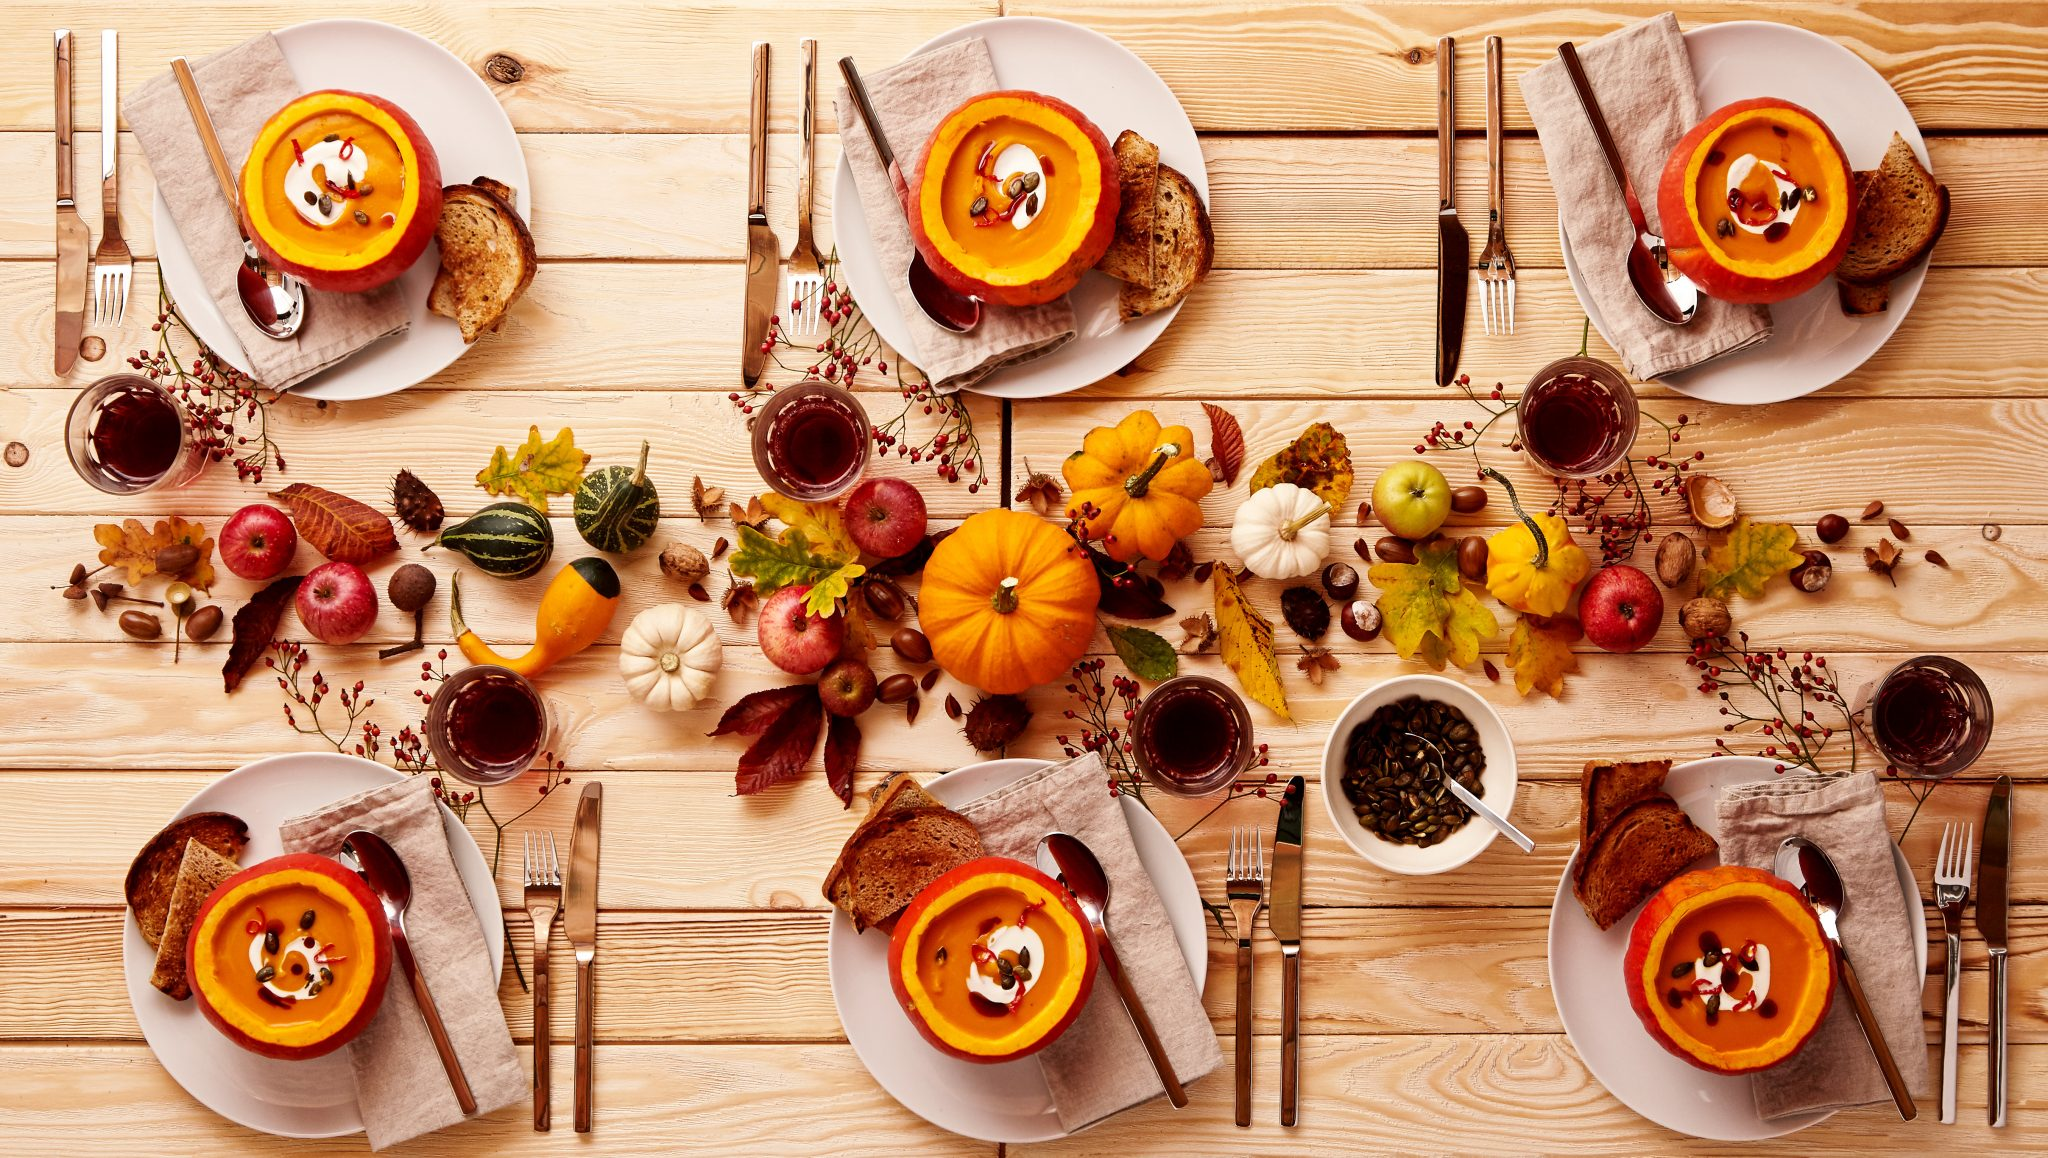 Get Ready For the Fall: A Food & Drink Pairing Guide